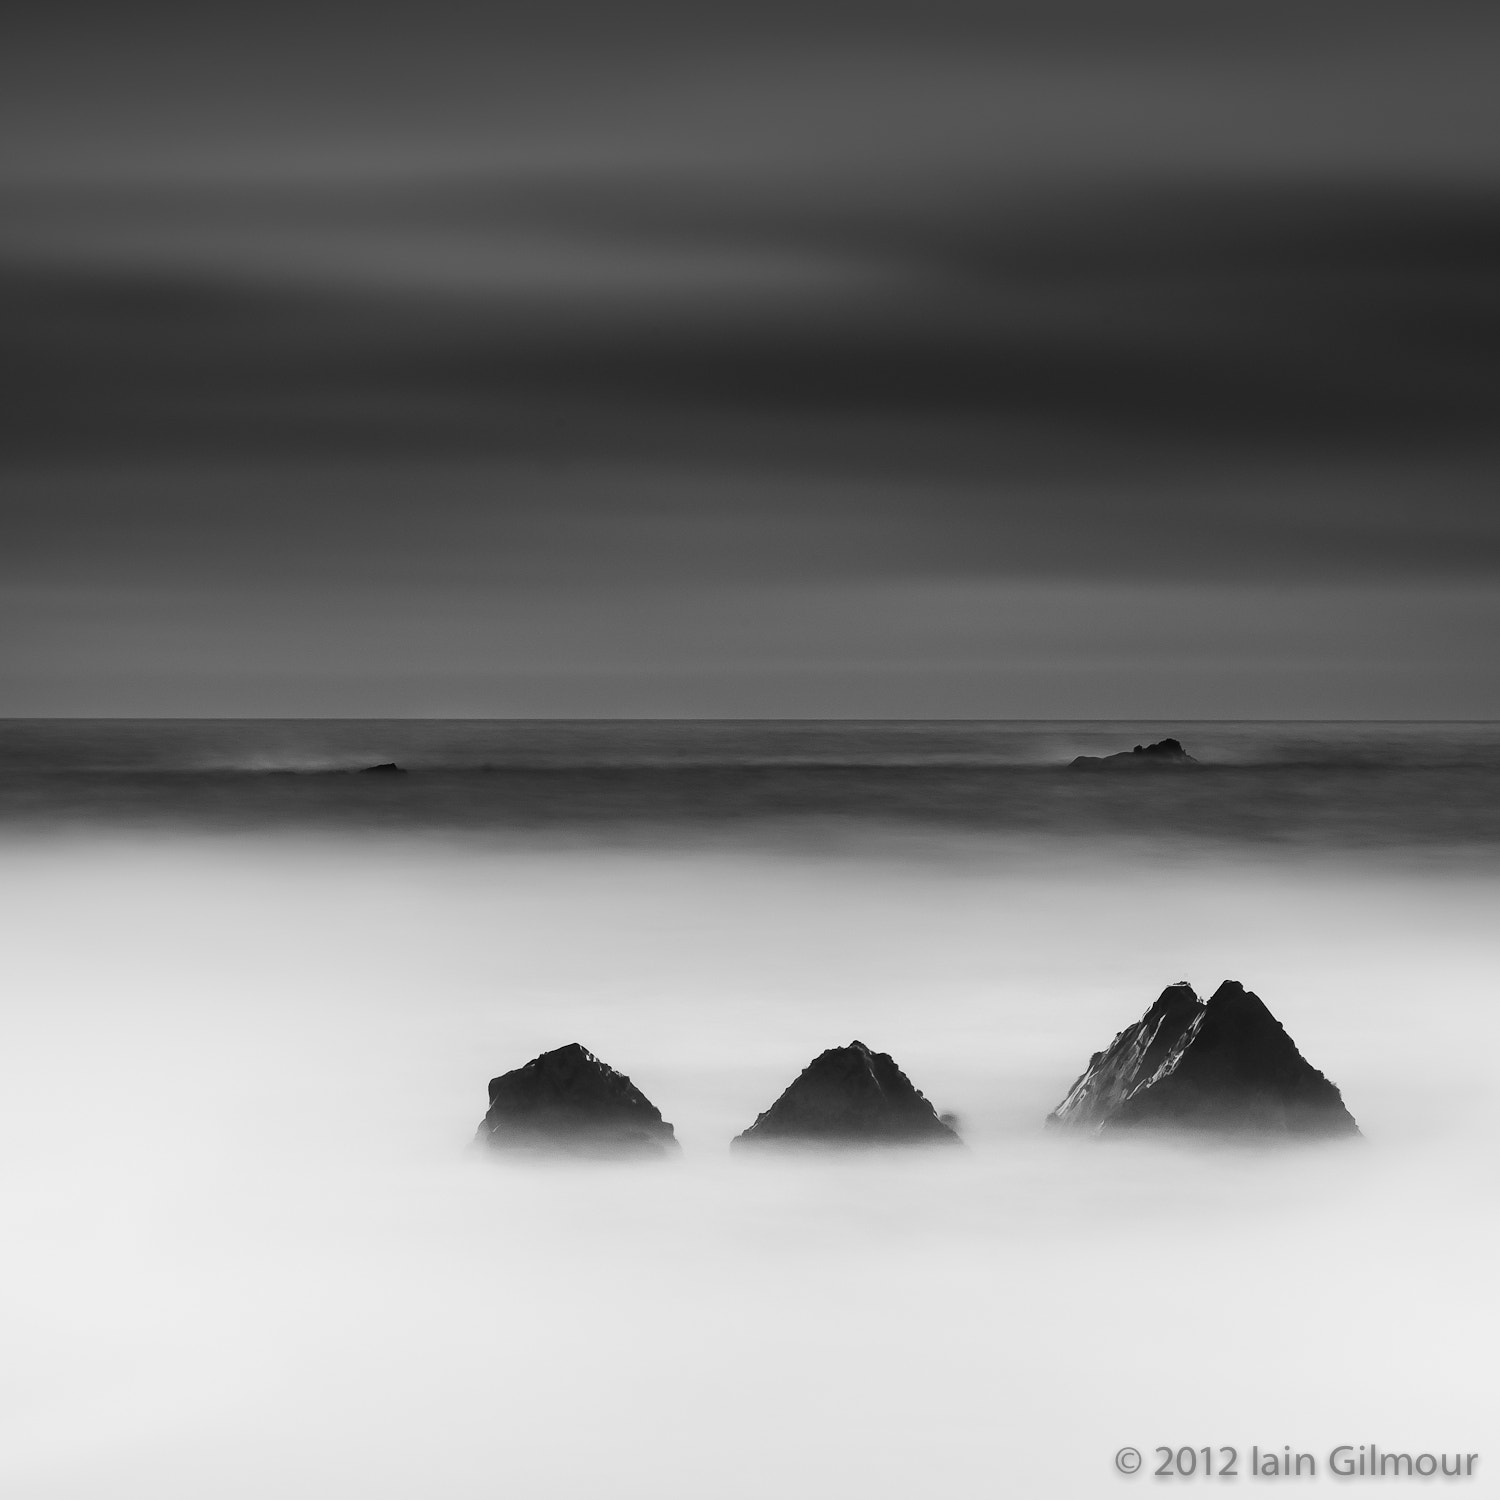 Photograph Marine Layer Minimalism by Iain Gilmour on 500px